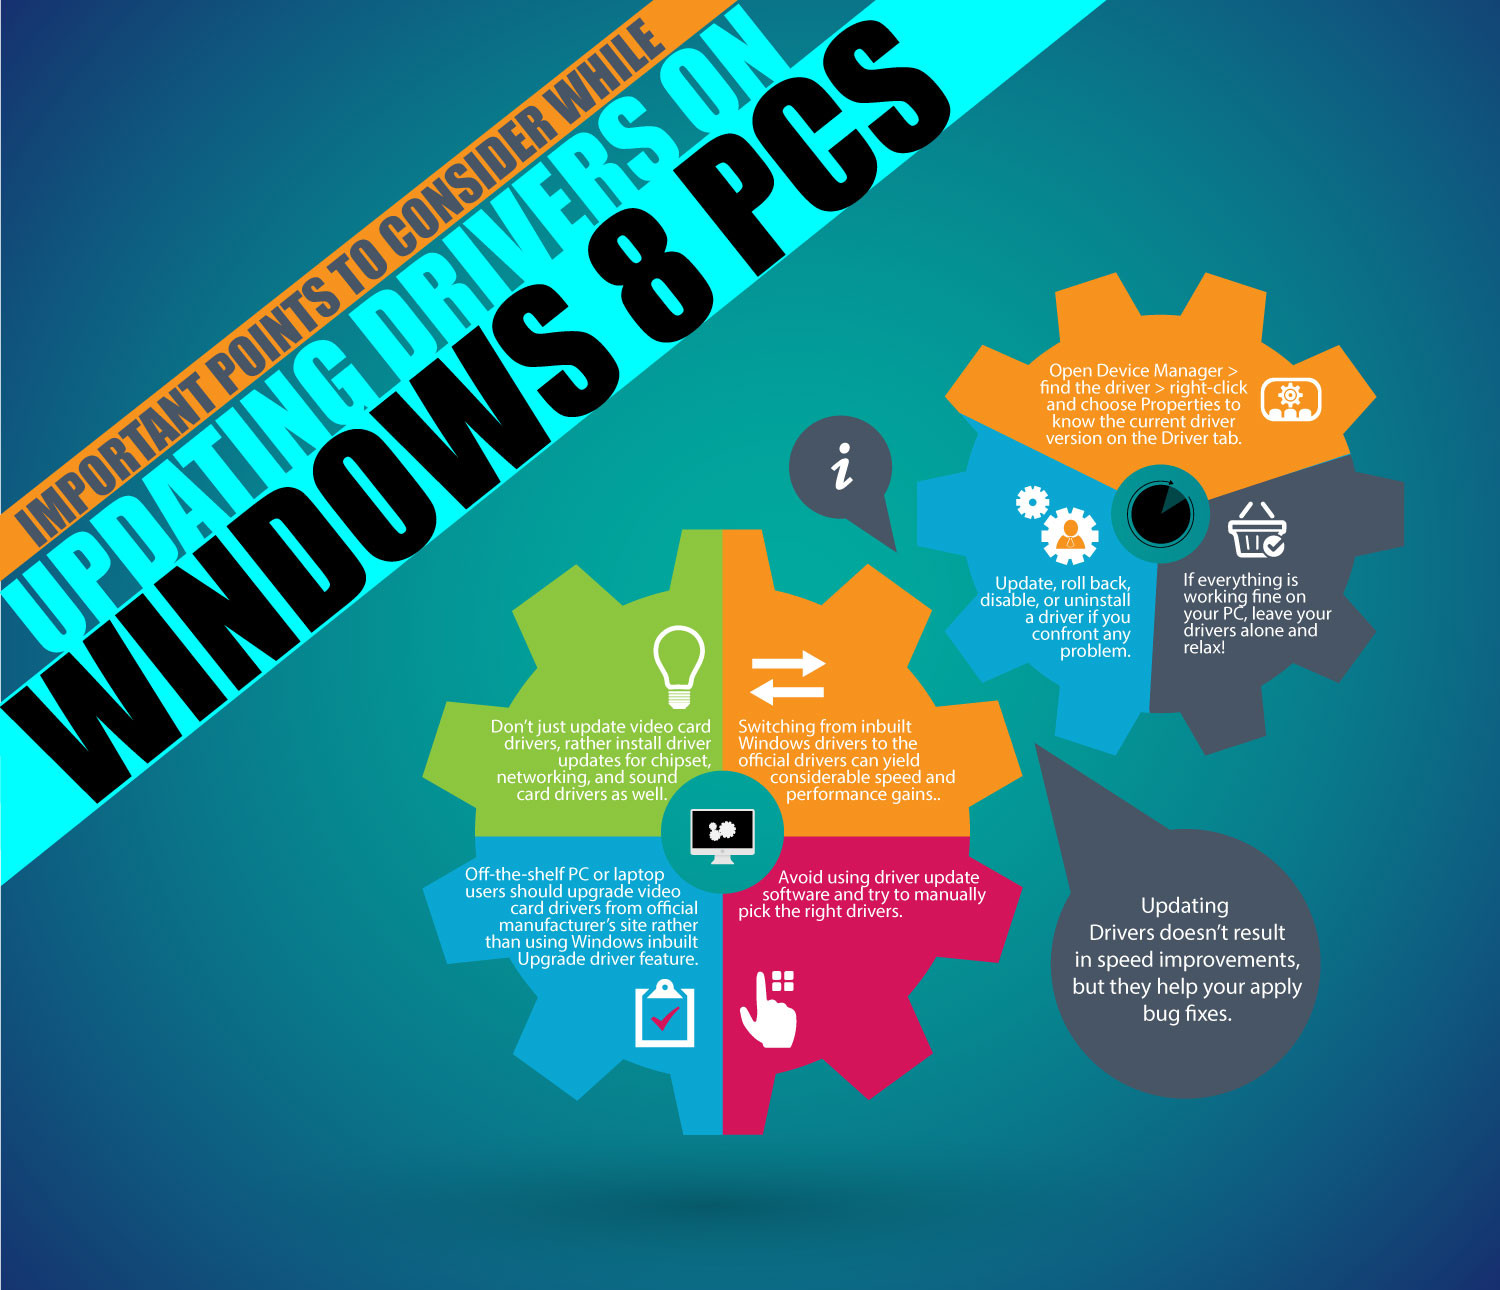 Important Points to Consider While Updating Drivers on Windows 8 PCs Infographic